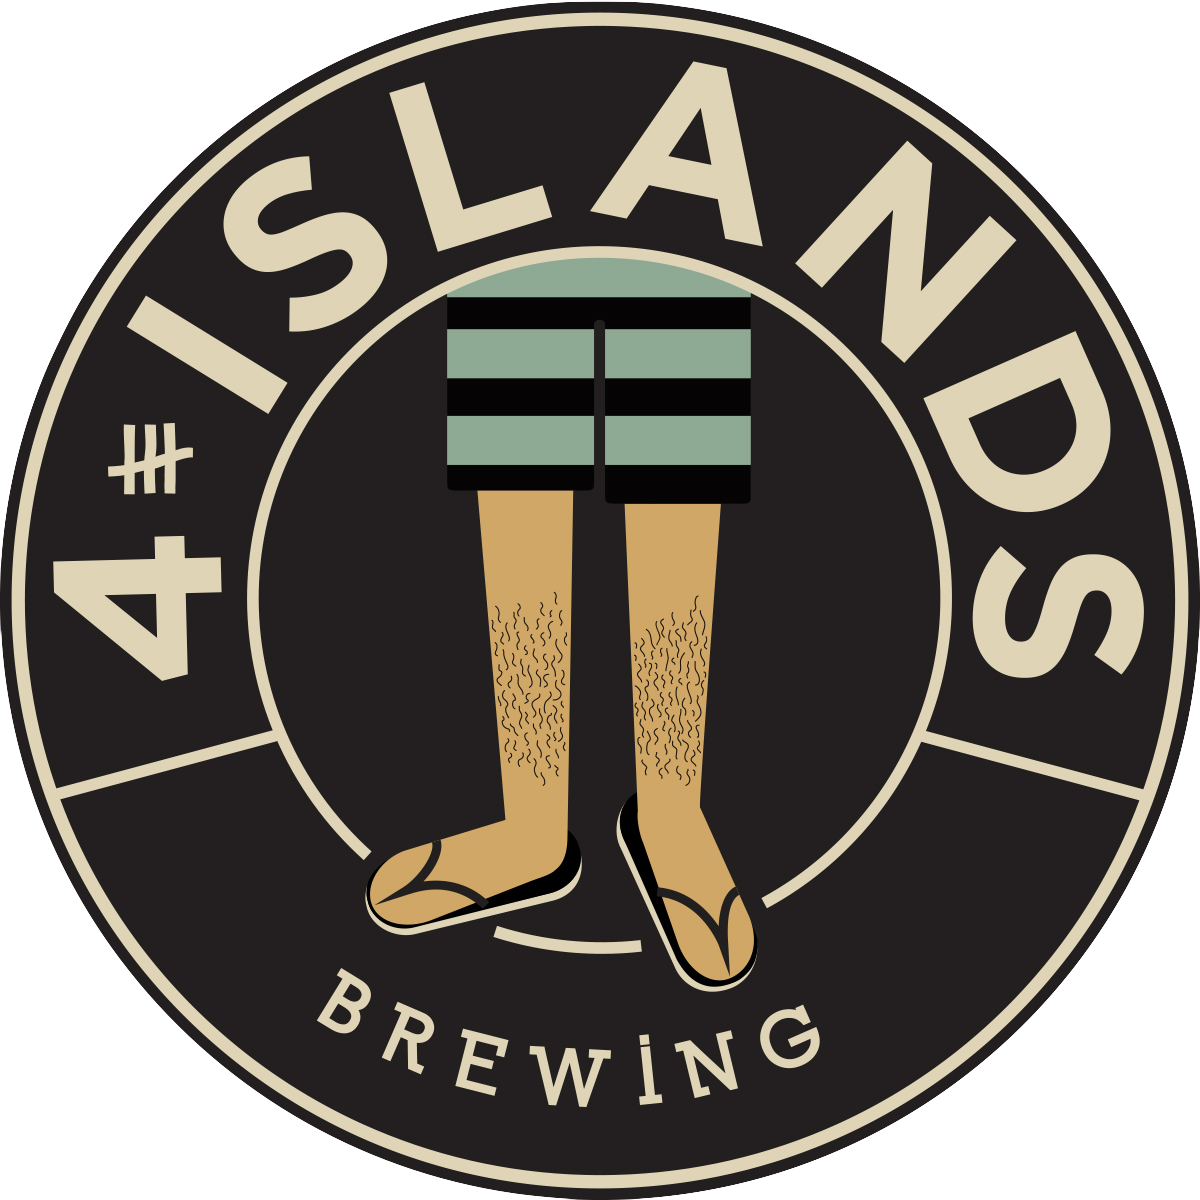 4 Islands Brewing logo